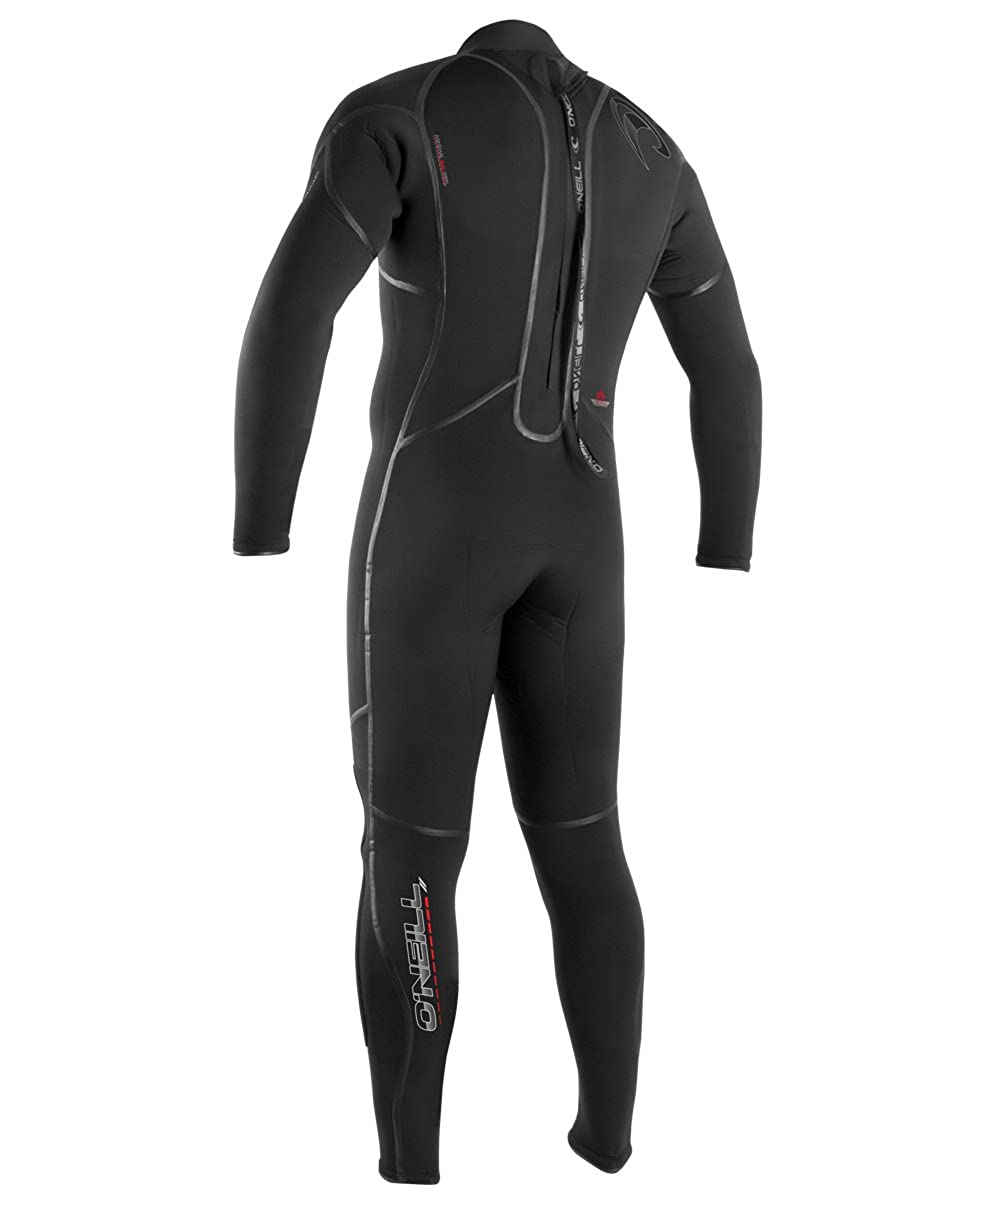 Amazon.com: ONeill Dive Mens 5 mm Sector Full Suit: Clothing